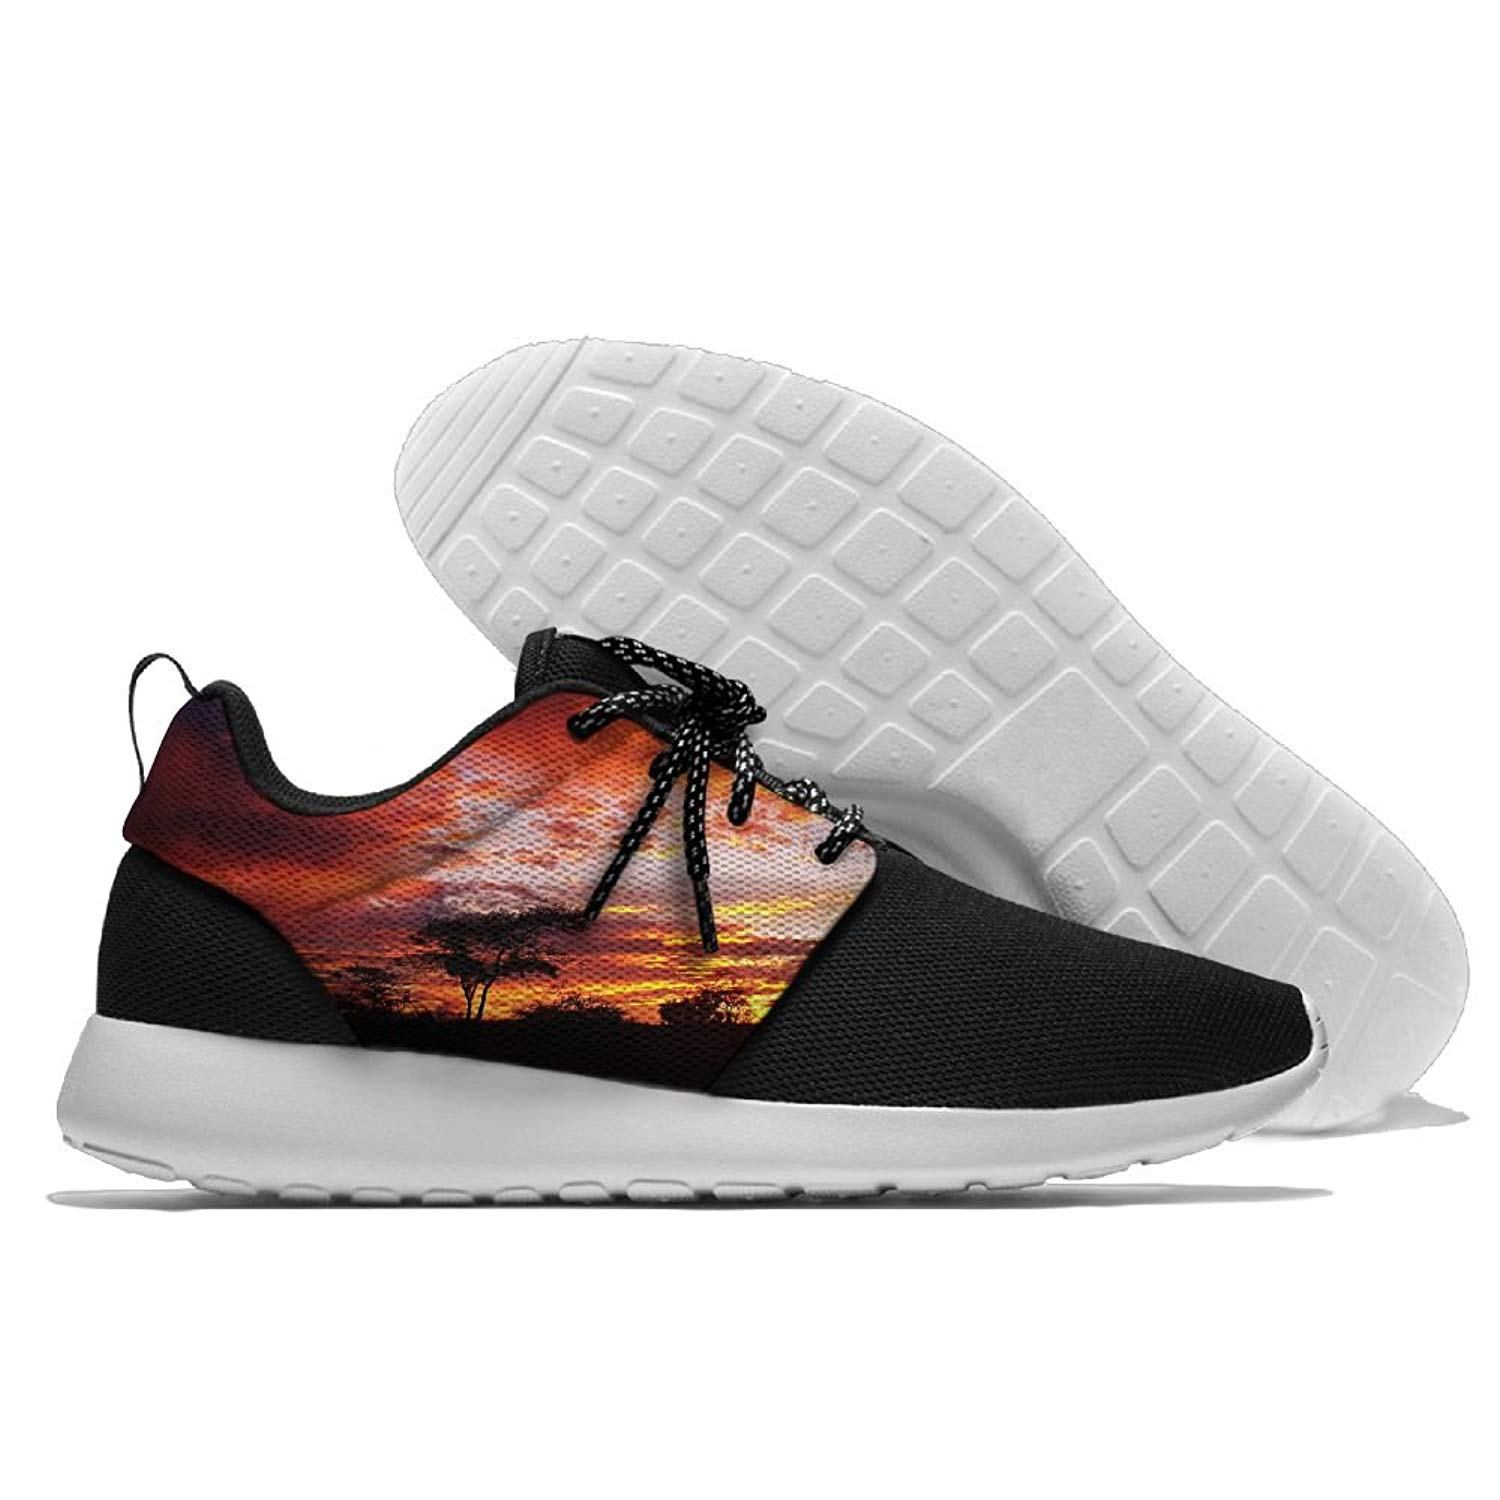 MREIO Wolf Childrens 3D Print Fly Knit Shoes Casual Sport Loafers Sneakers Running Shoes For Girls